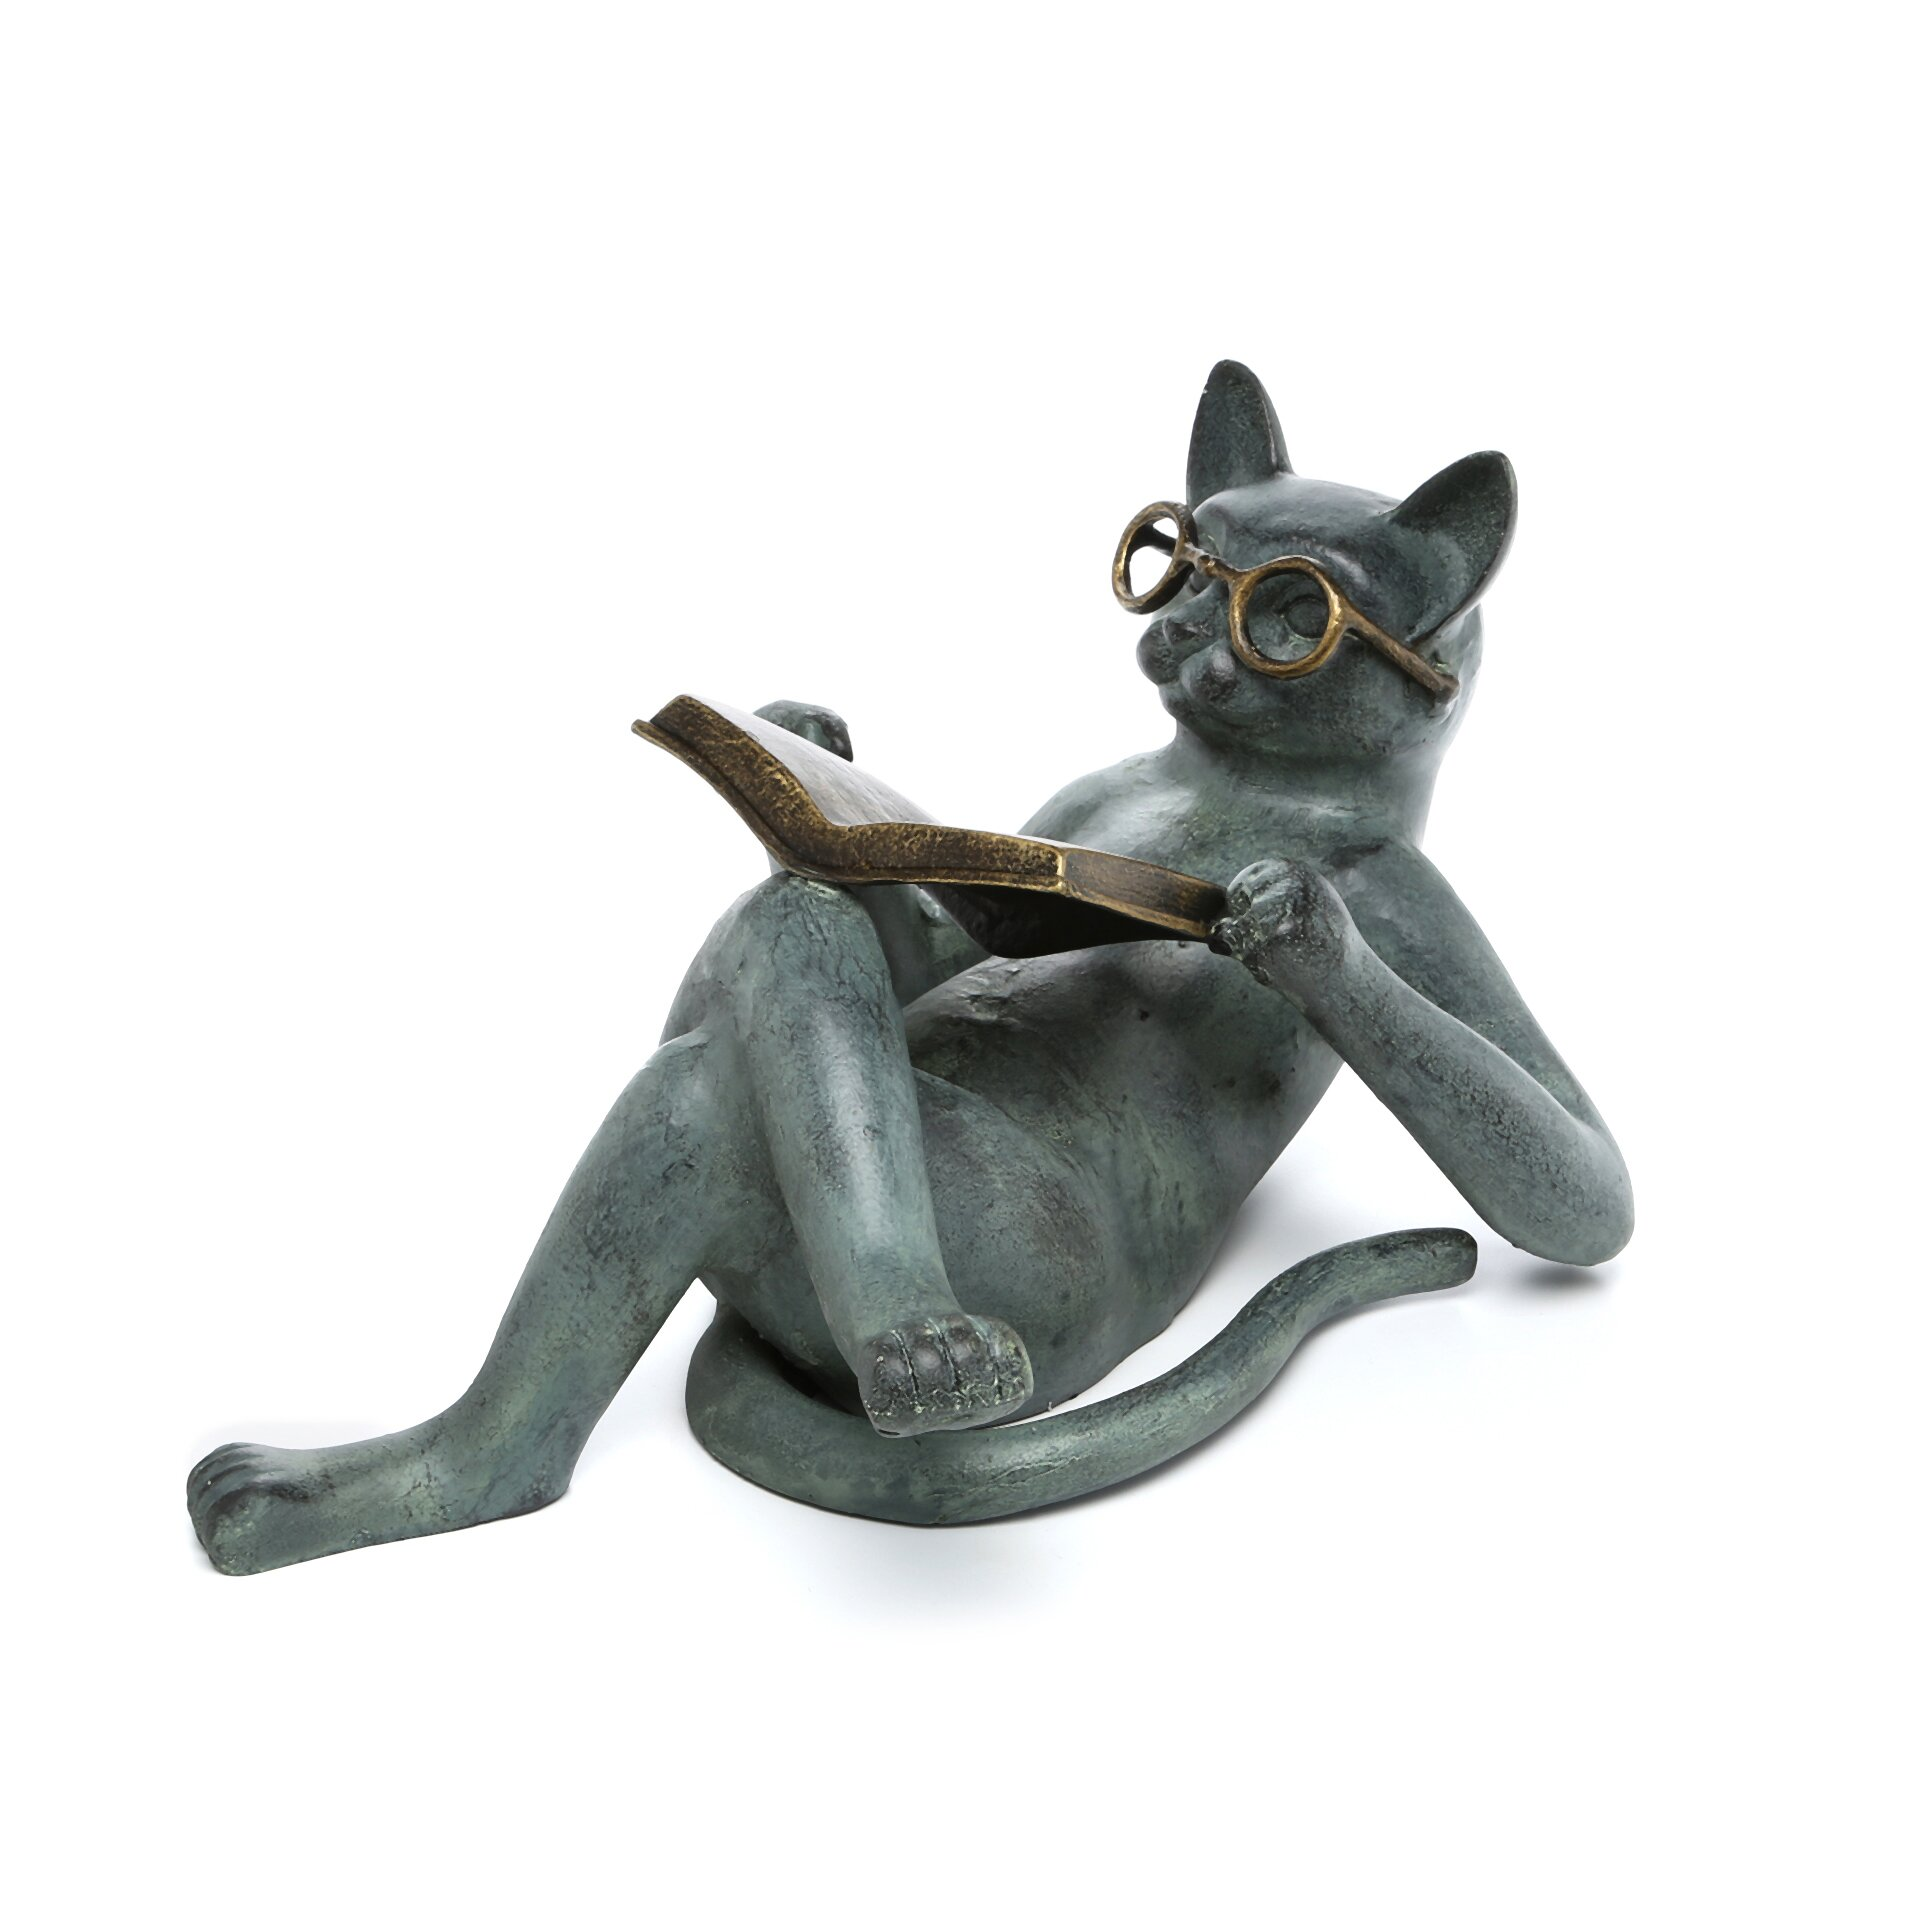 SPI Home Literary Cat Garden Statue Reviews Wayfair